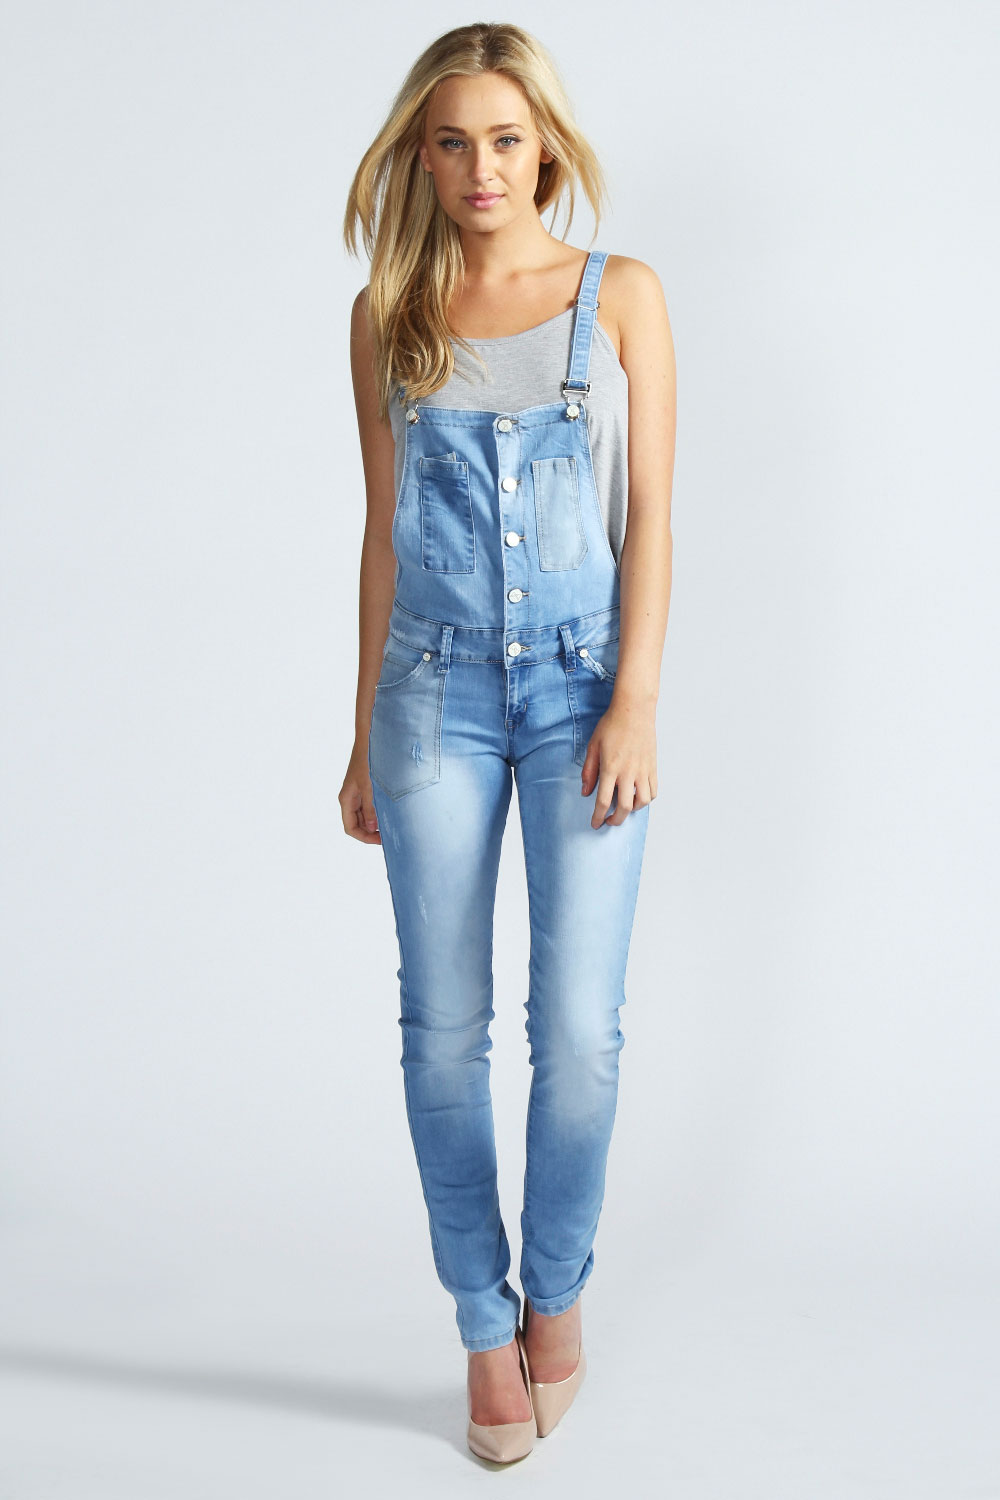 Women's Wear Dungarees - Women's Wear Dungarees Manufacturers, Women's Wear Dungarees Suppliers ...